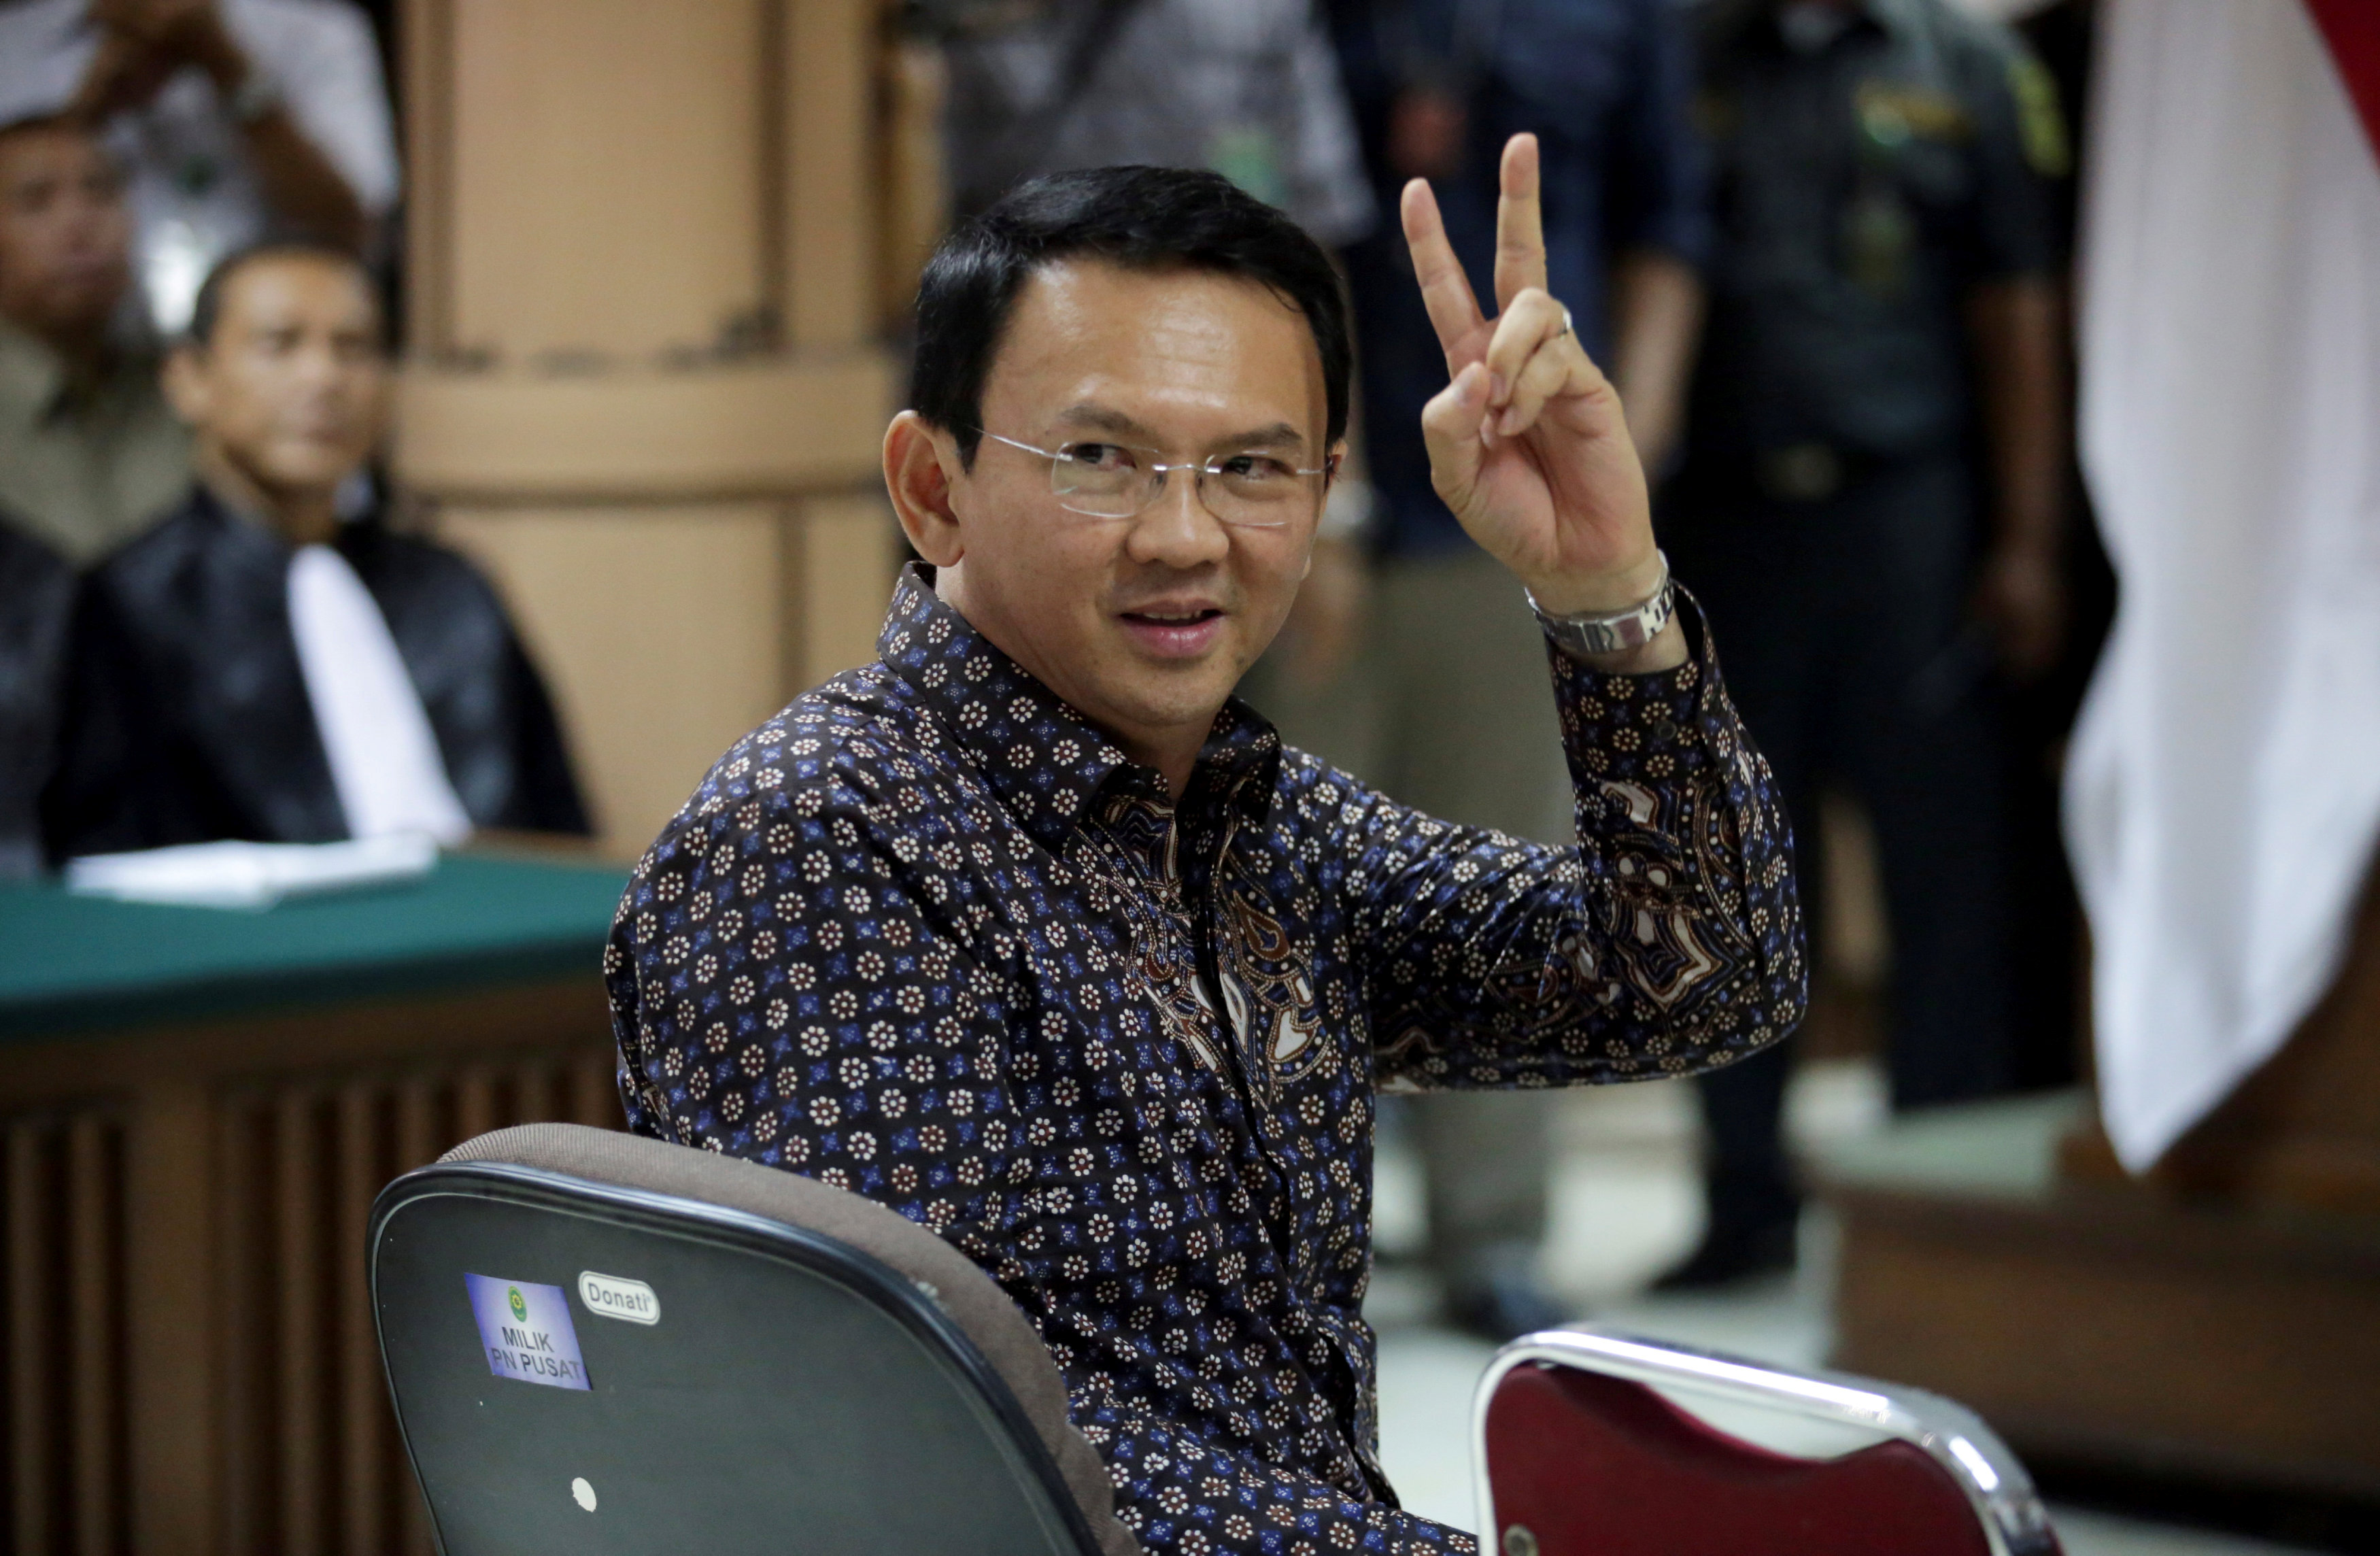 Jakarta's Governor Basuki Tjahaja Purnama gestures inside the courtroom during his blasphemy trial at the North Jakarta District Court in Jakarta, Indonesia, December 27, 2016. — Reuters pic